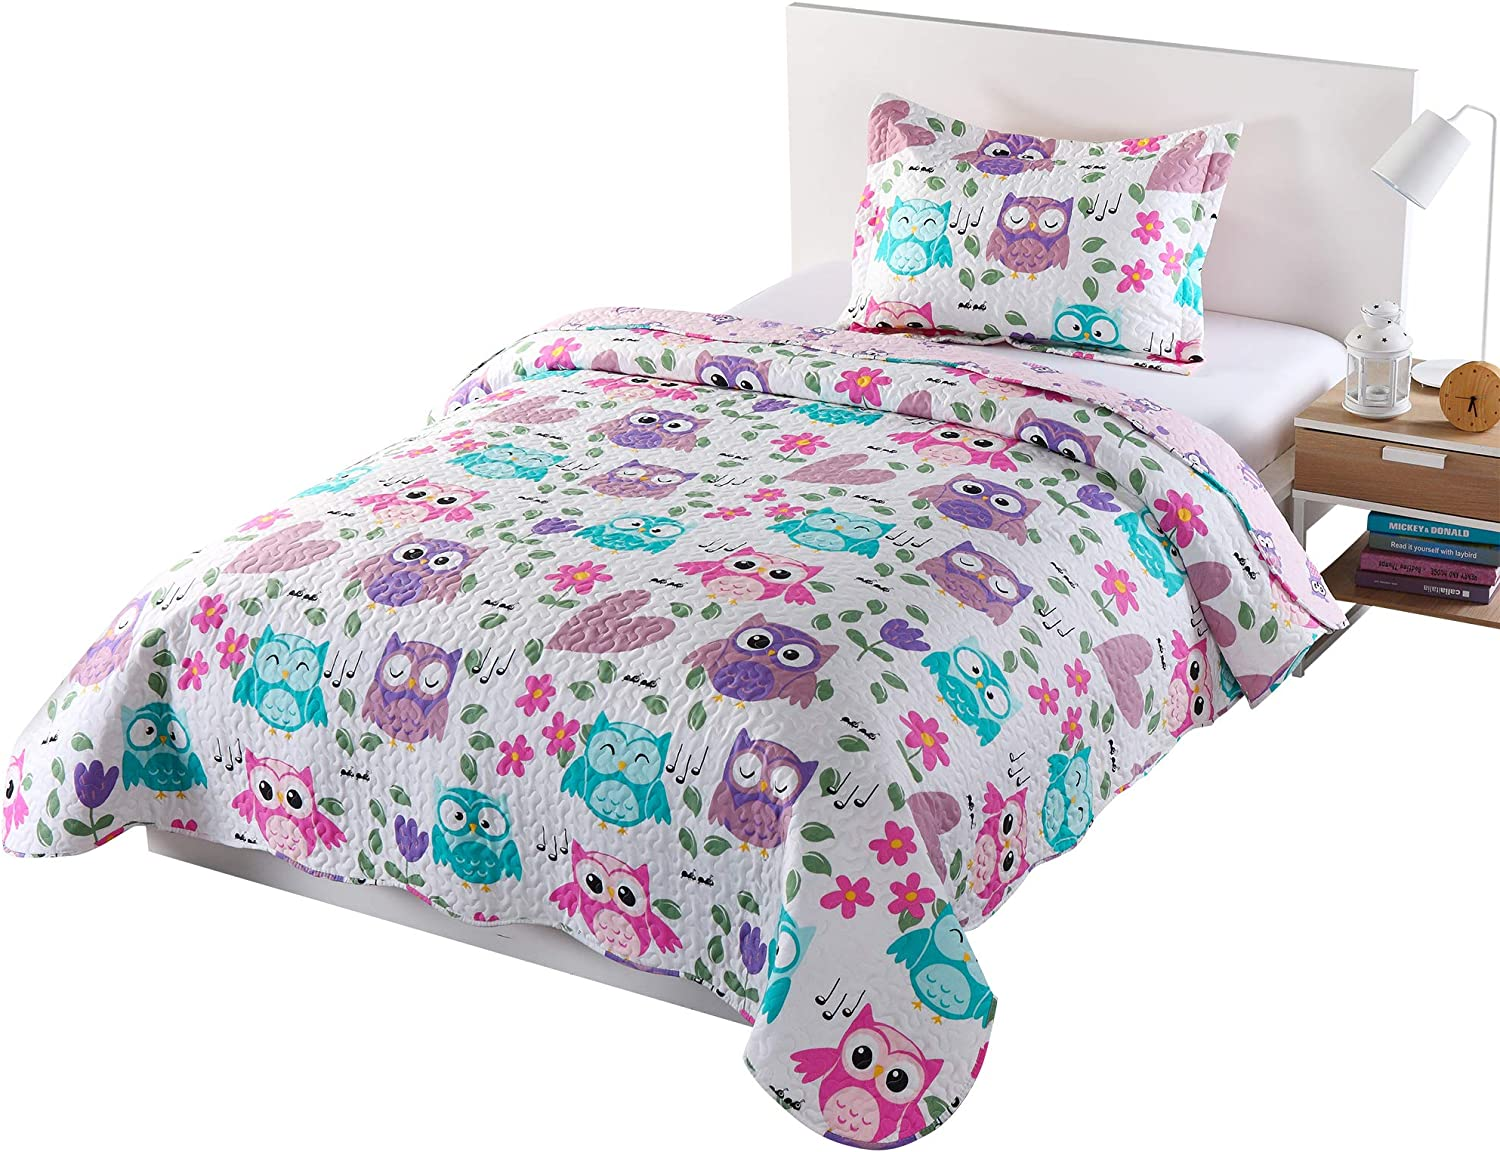 MarCielo 2 Piece Kids Bedspread Quilts Set Throw Blanket for Teens Boys Girls Bed Printed Bedding Coverlet, Twin Size, Purple Hoot (Twin)